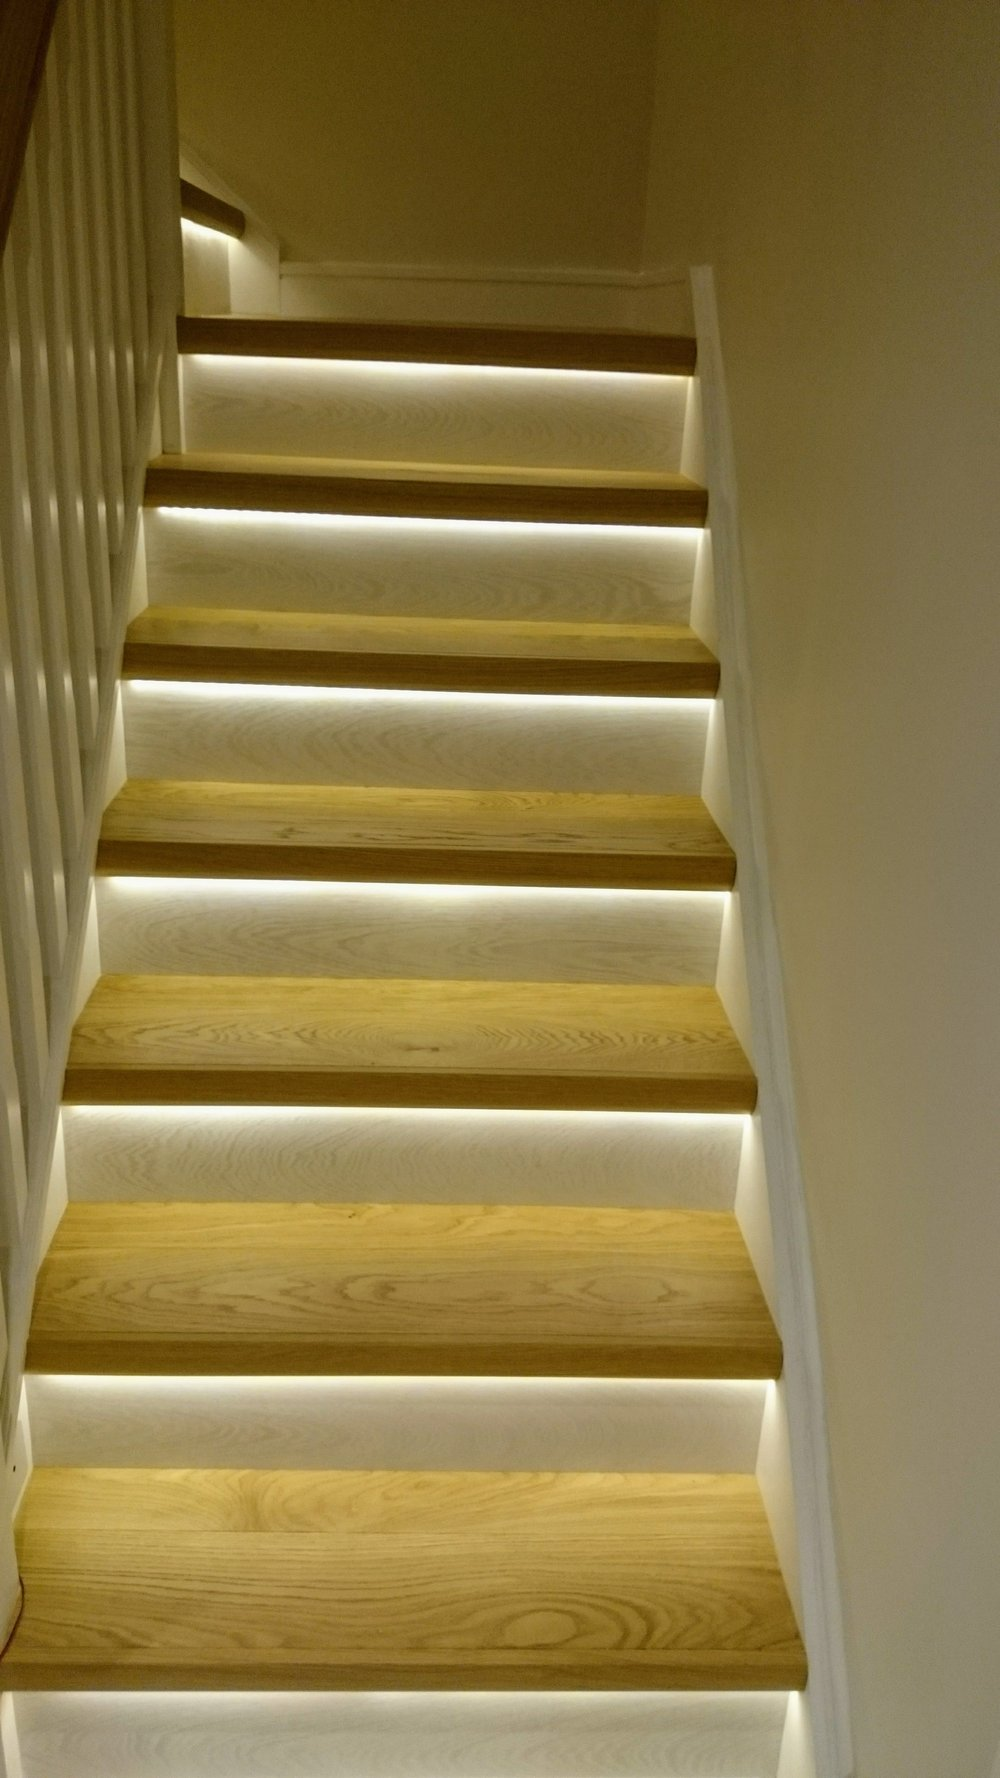 www.bargainflooring.ie presents Quick-Step stairs with LED lighting in Parkside , Clongriffin , Dublin 13